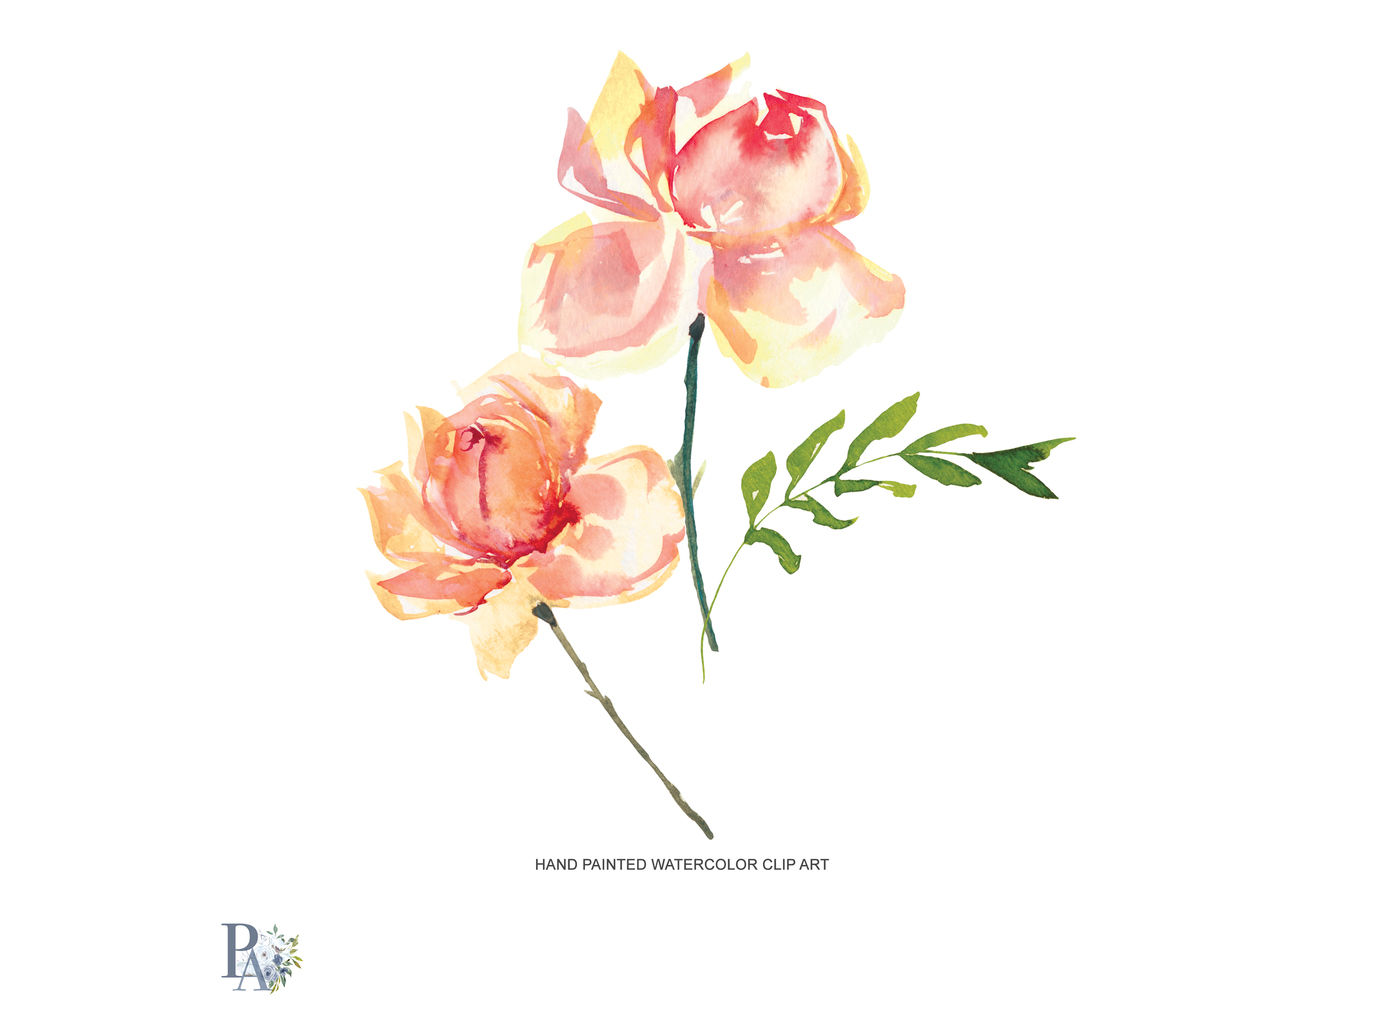 Peach rose clipart graphic library library Watercolor Purple & Peach Rose Clipart By Patishop Art ... graphic library library